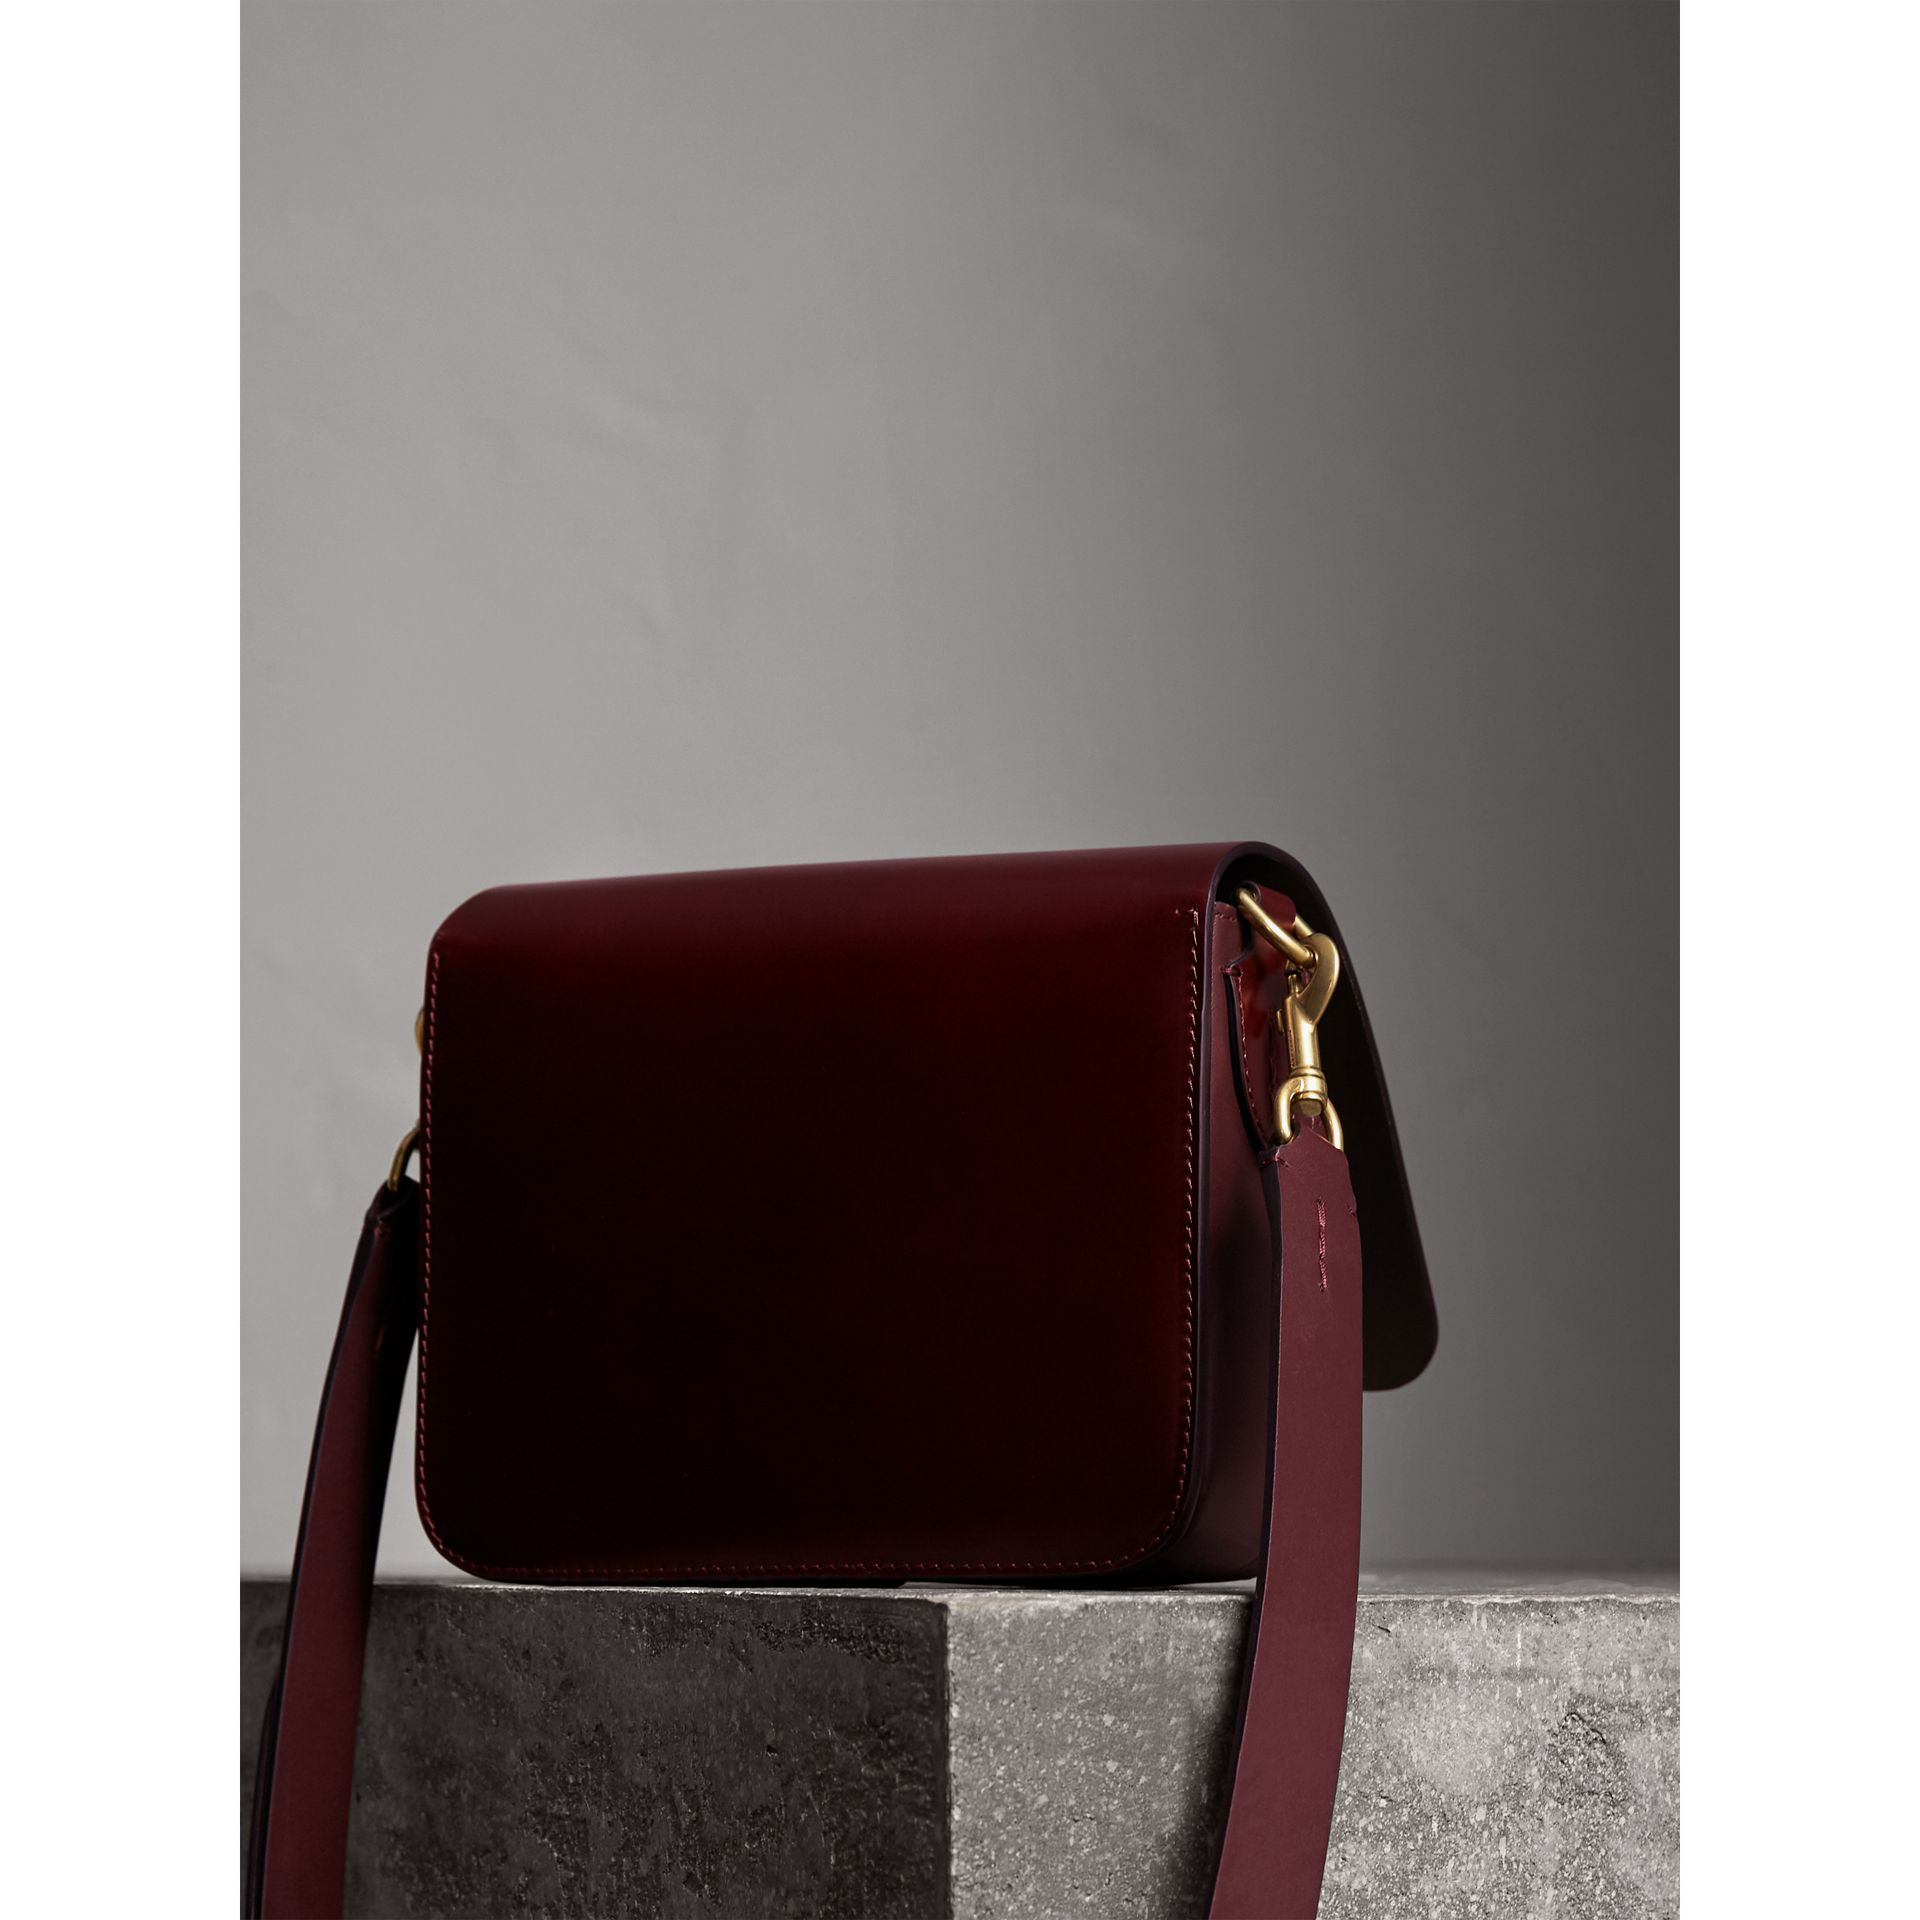 The Square Satchel in Bridle Leather in Deep Claret - Women | Burberry Australia - gallery image 4